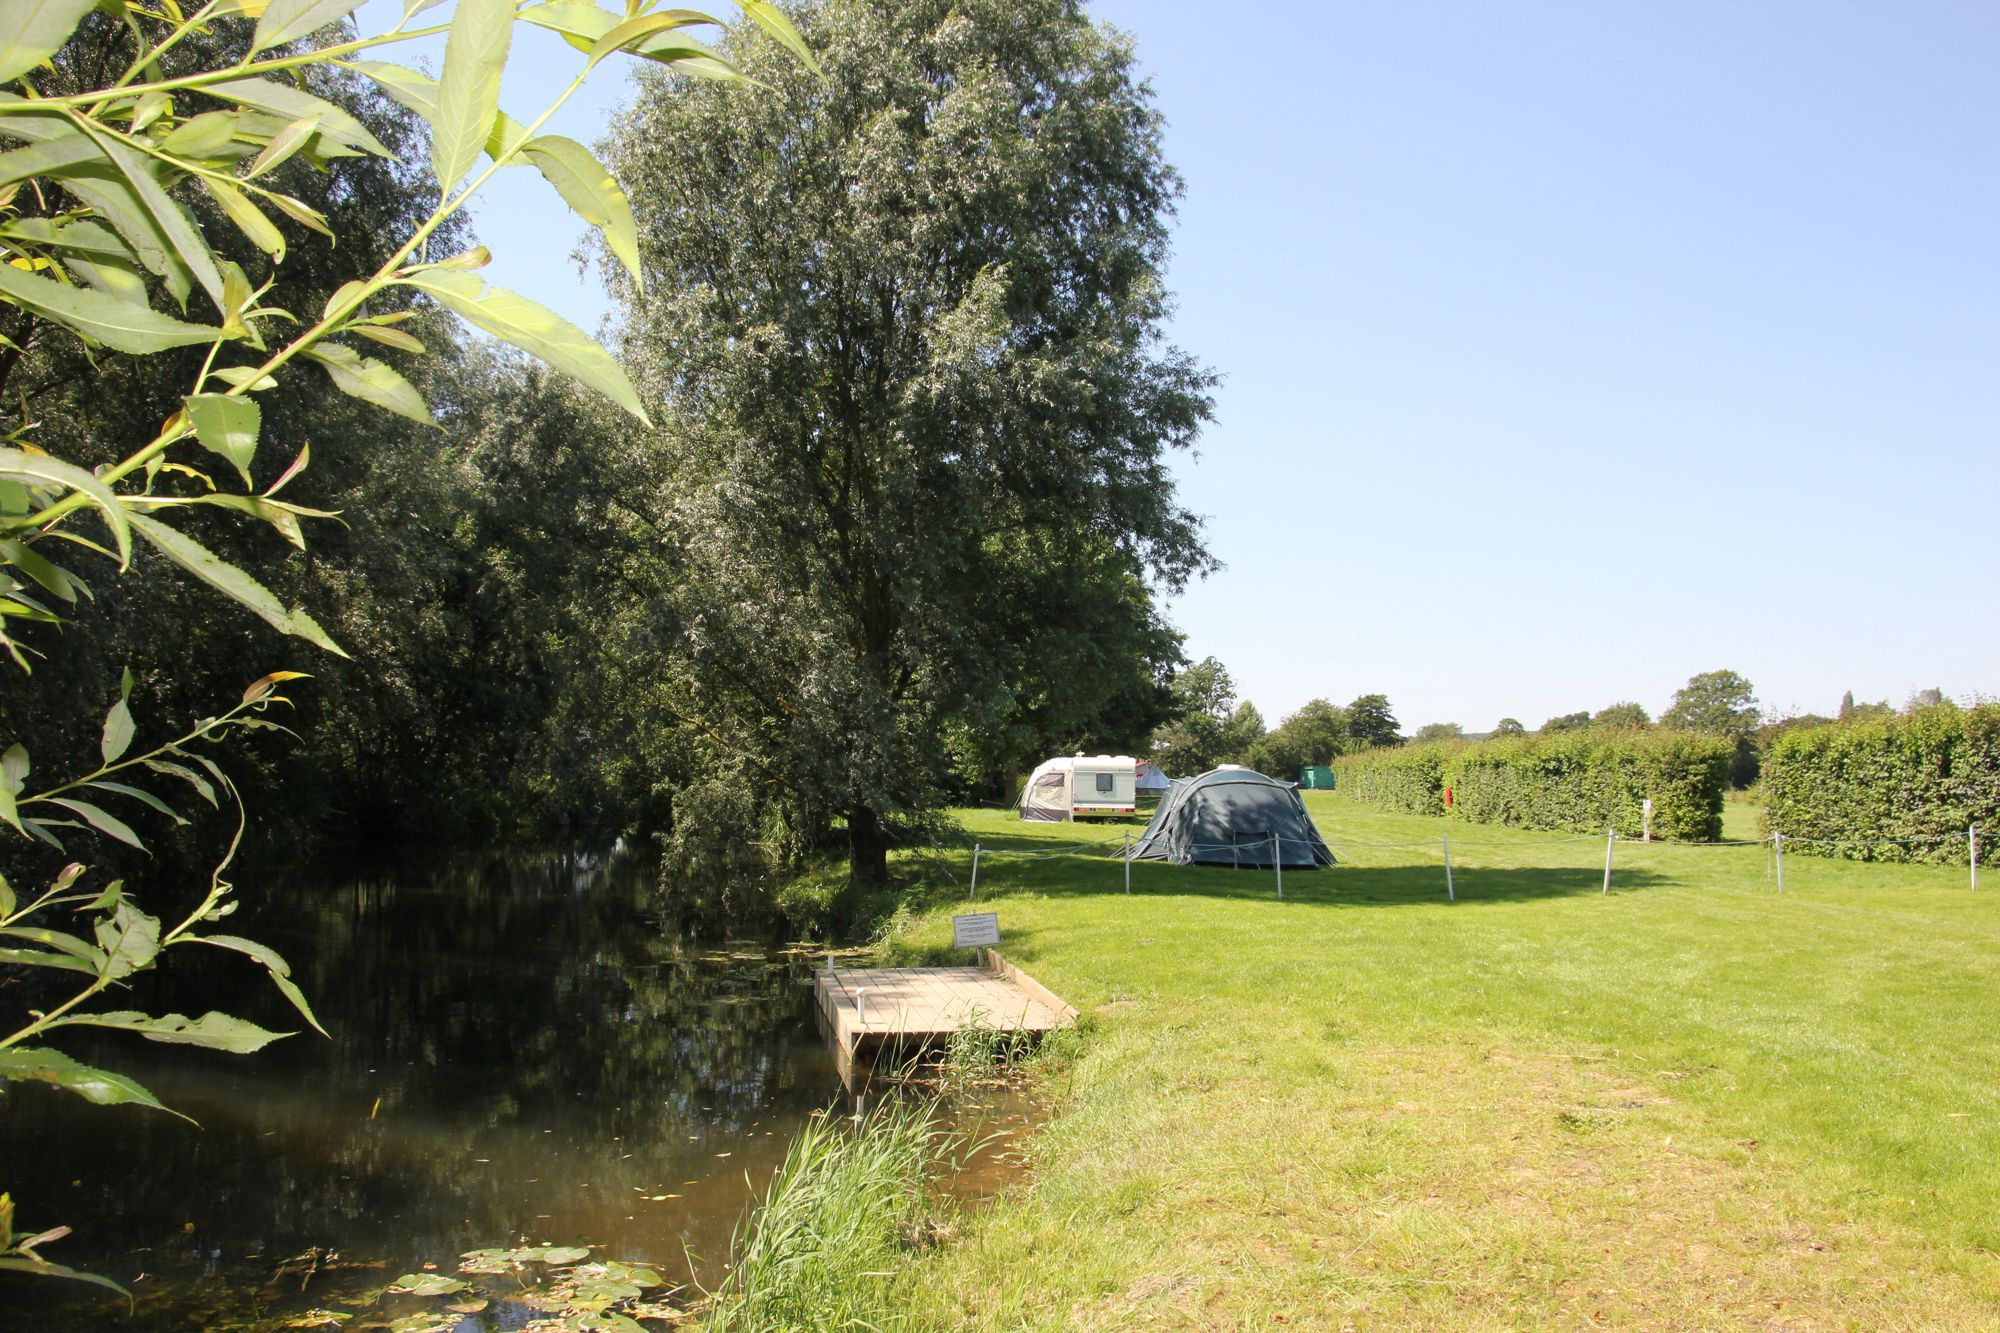 Riverside camping in Constable's countryside, right in the heart of Suffolk's Dedham Vale.